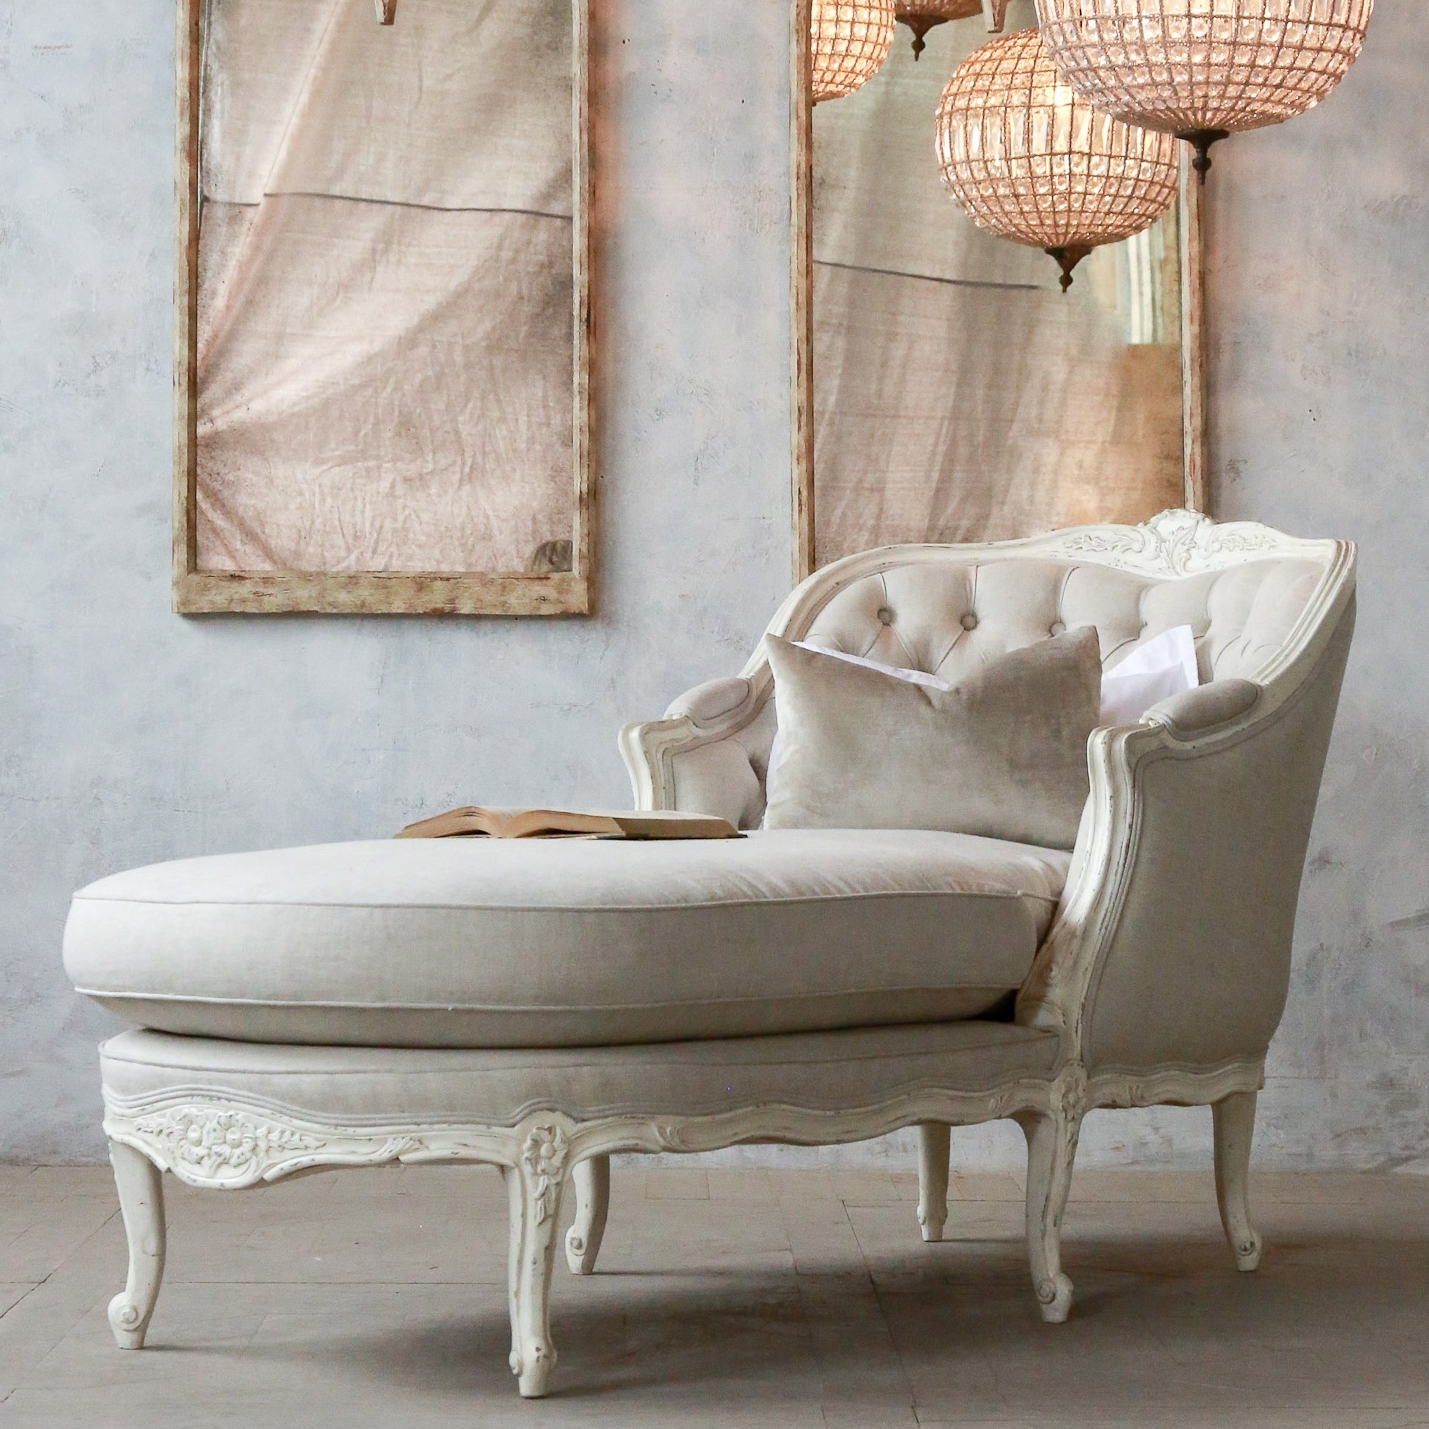 Most Recently Released Vintage Victorian Chaise Lounge – Home Design And Decor Regarding Victorian Chaises (View 15 of 15)